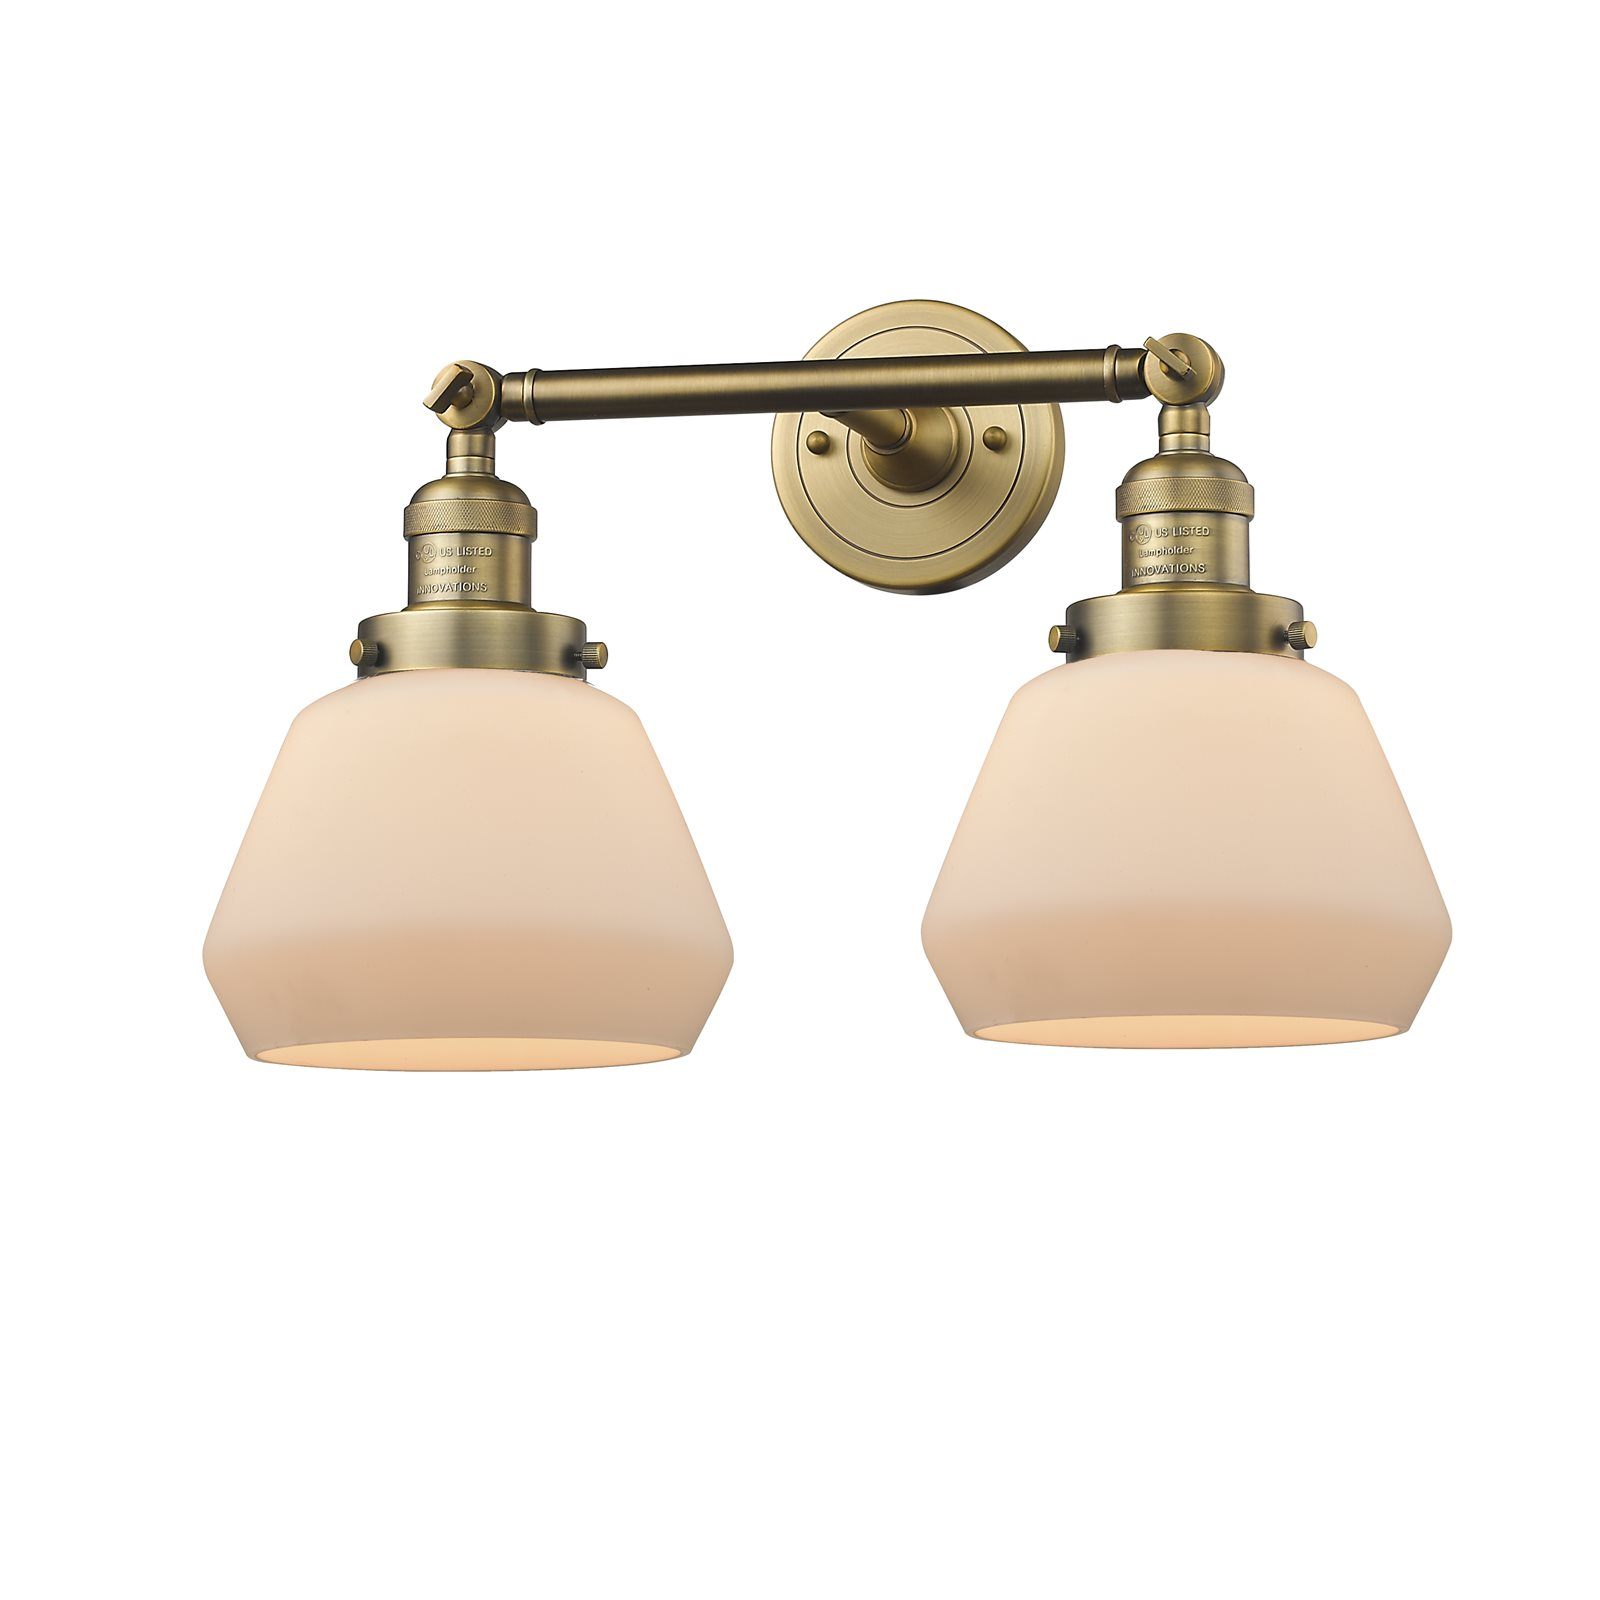 """Innovations 2-LT LED Fulton 16.5"""" Bathroom Fixture Brushed Brass 208-BB-G171-LED by"""